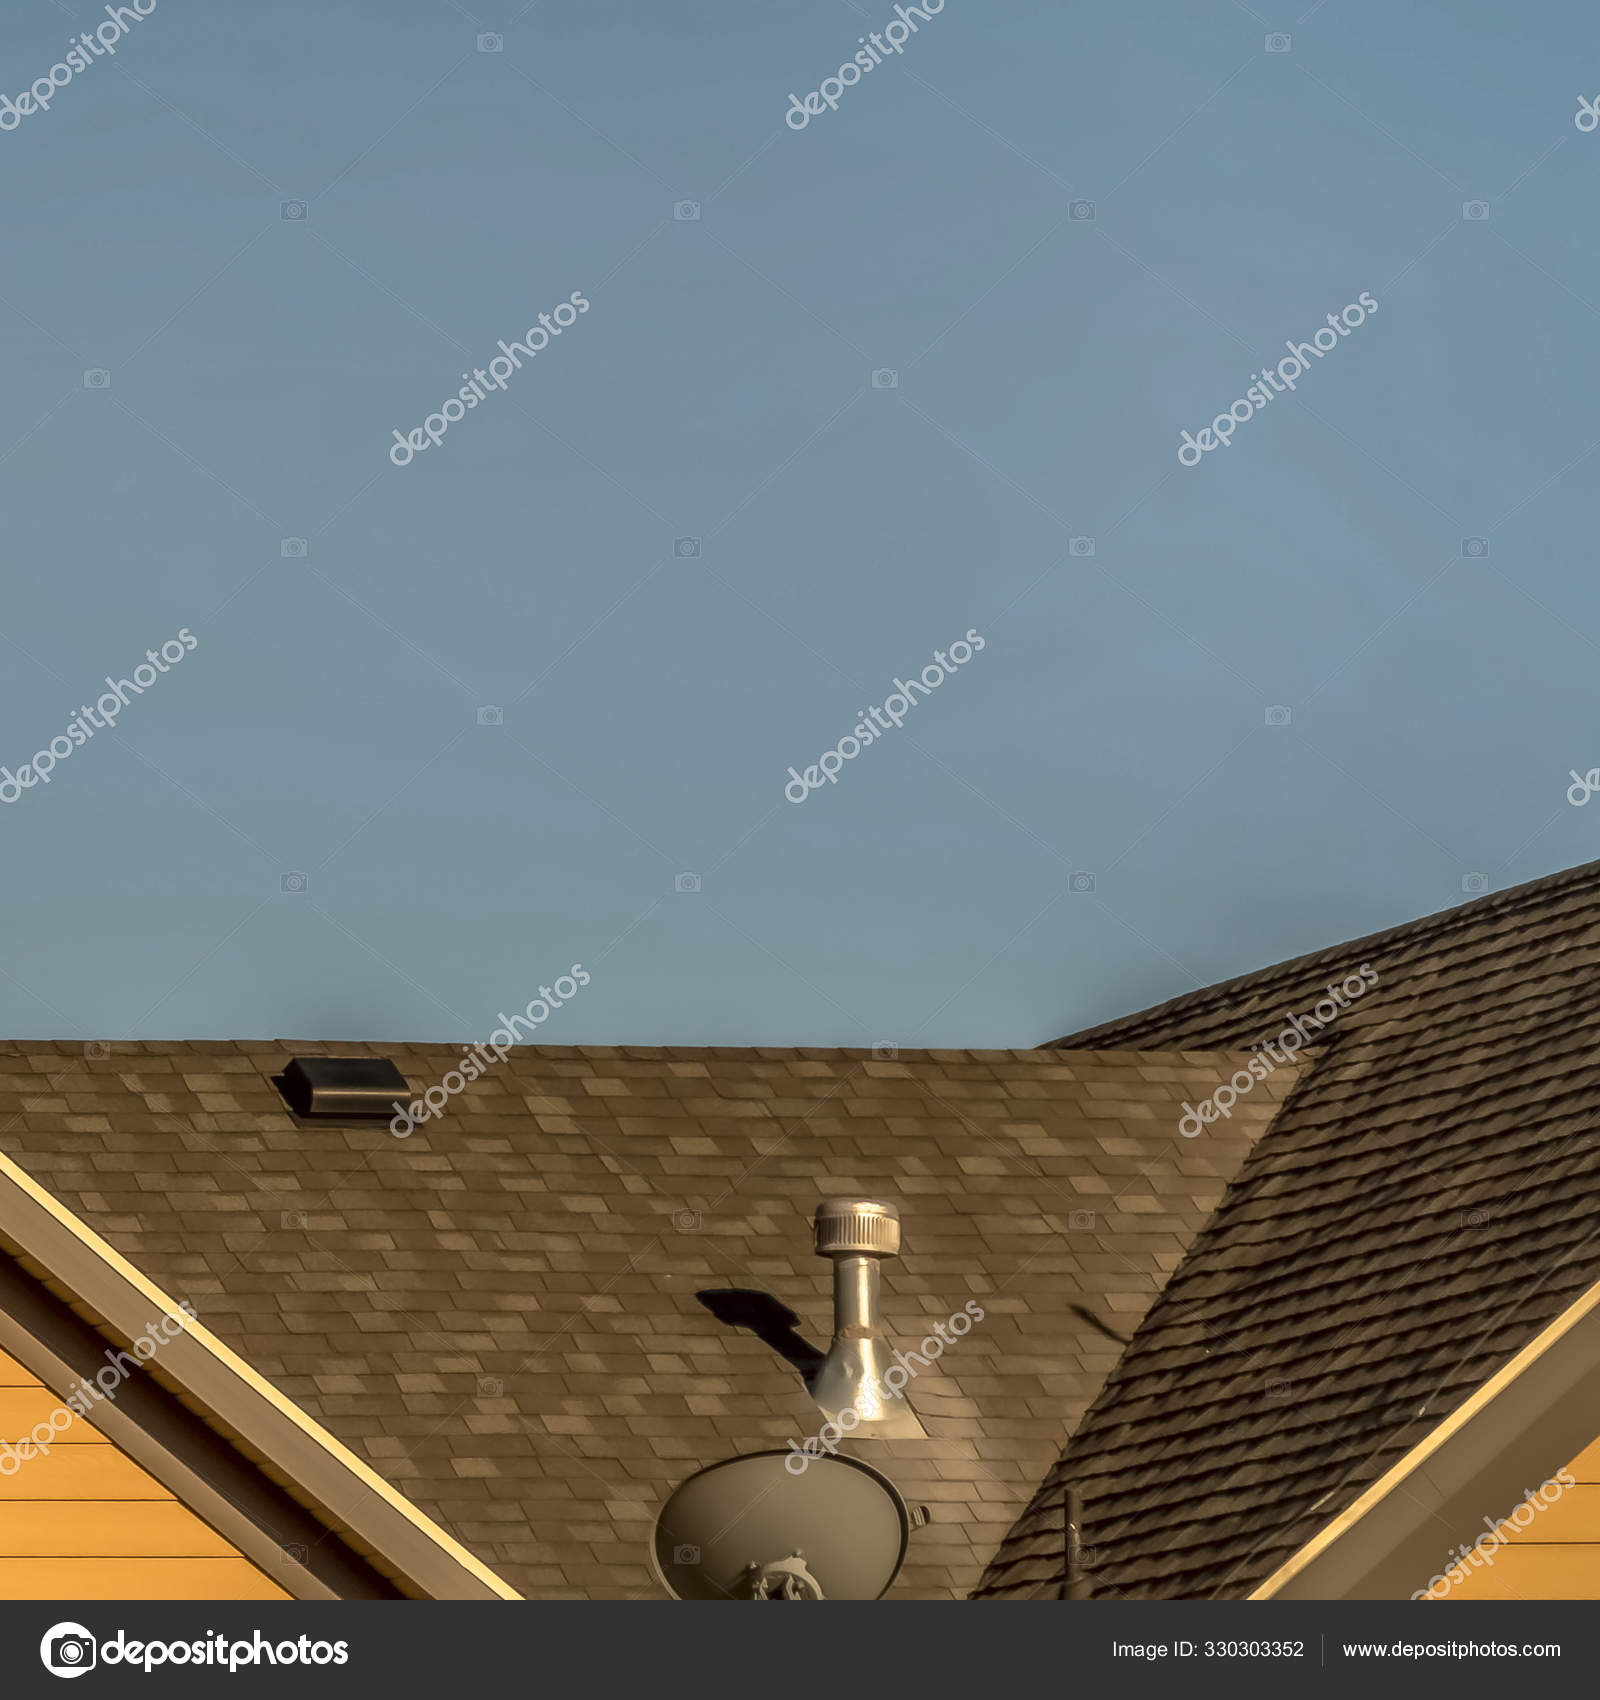 depositphotos 330303352 stock photo square house exterior with roof